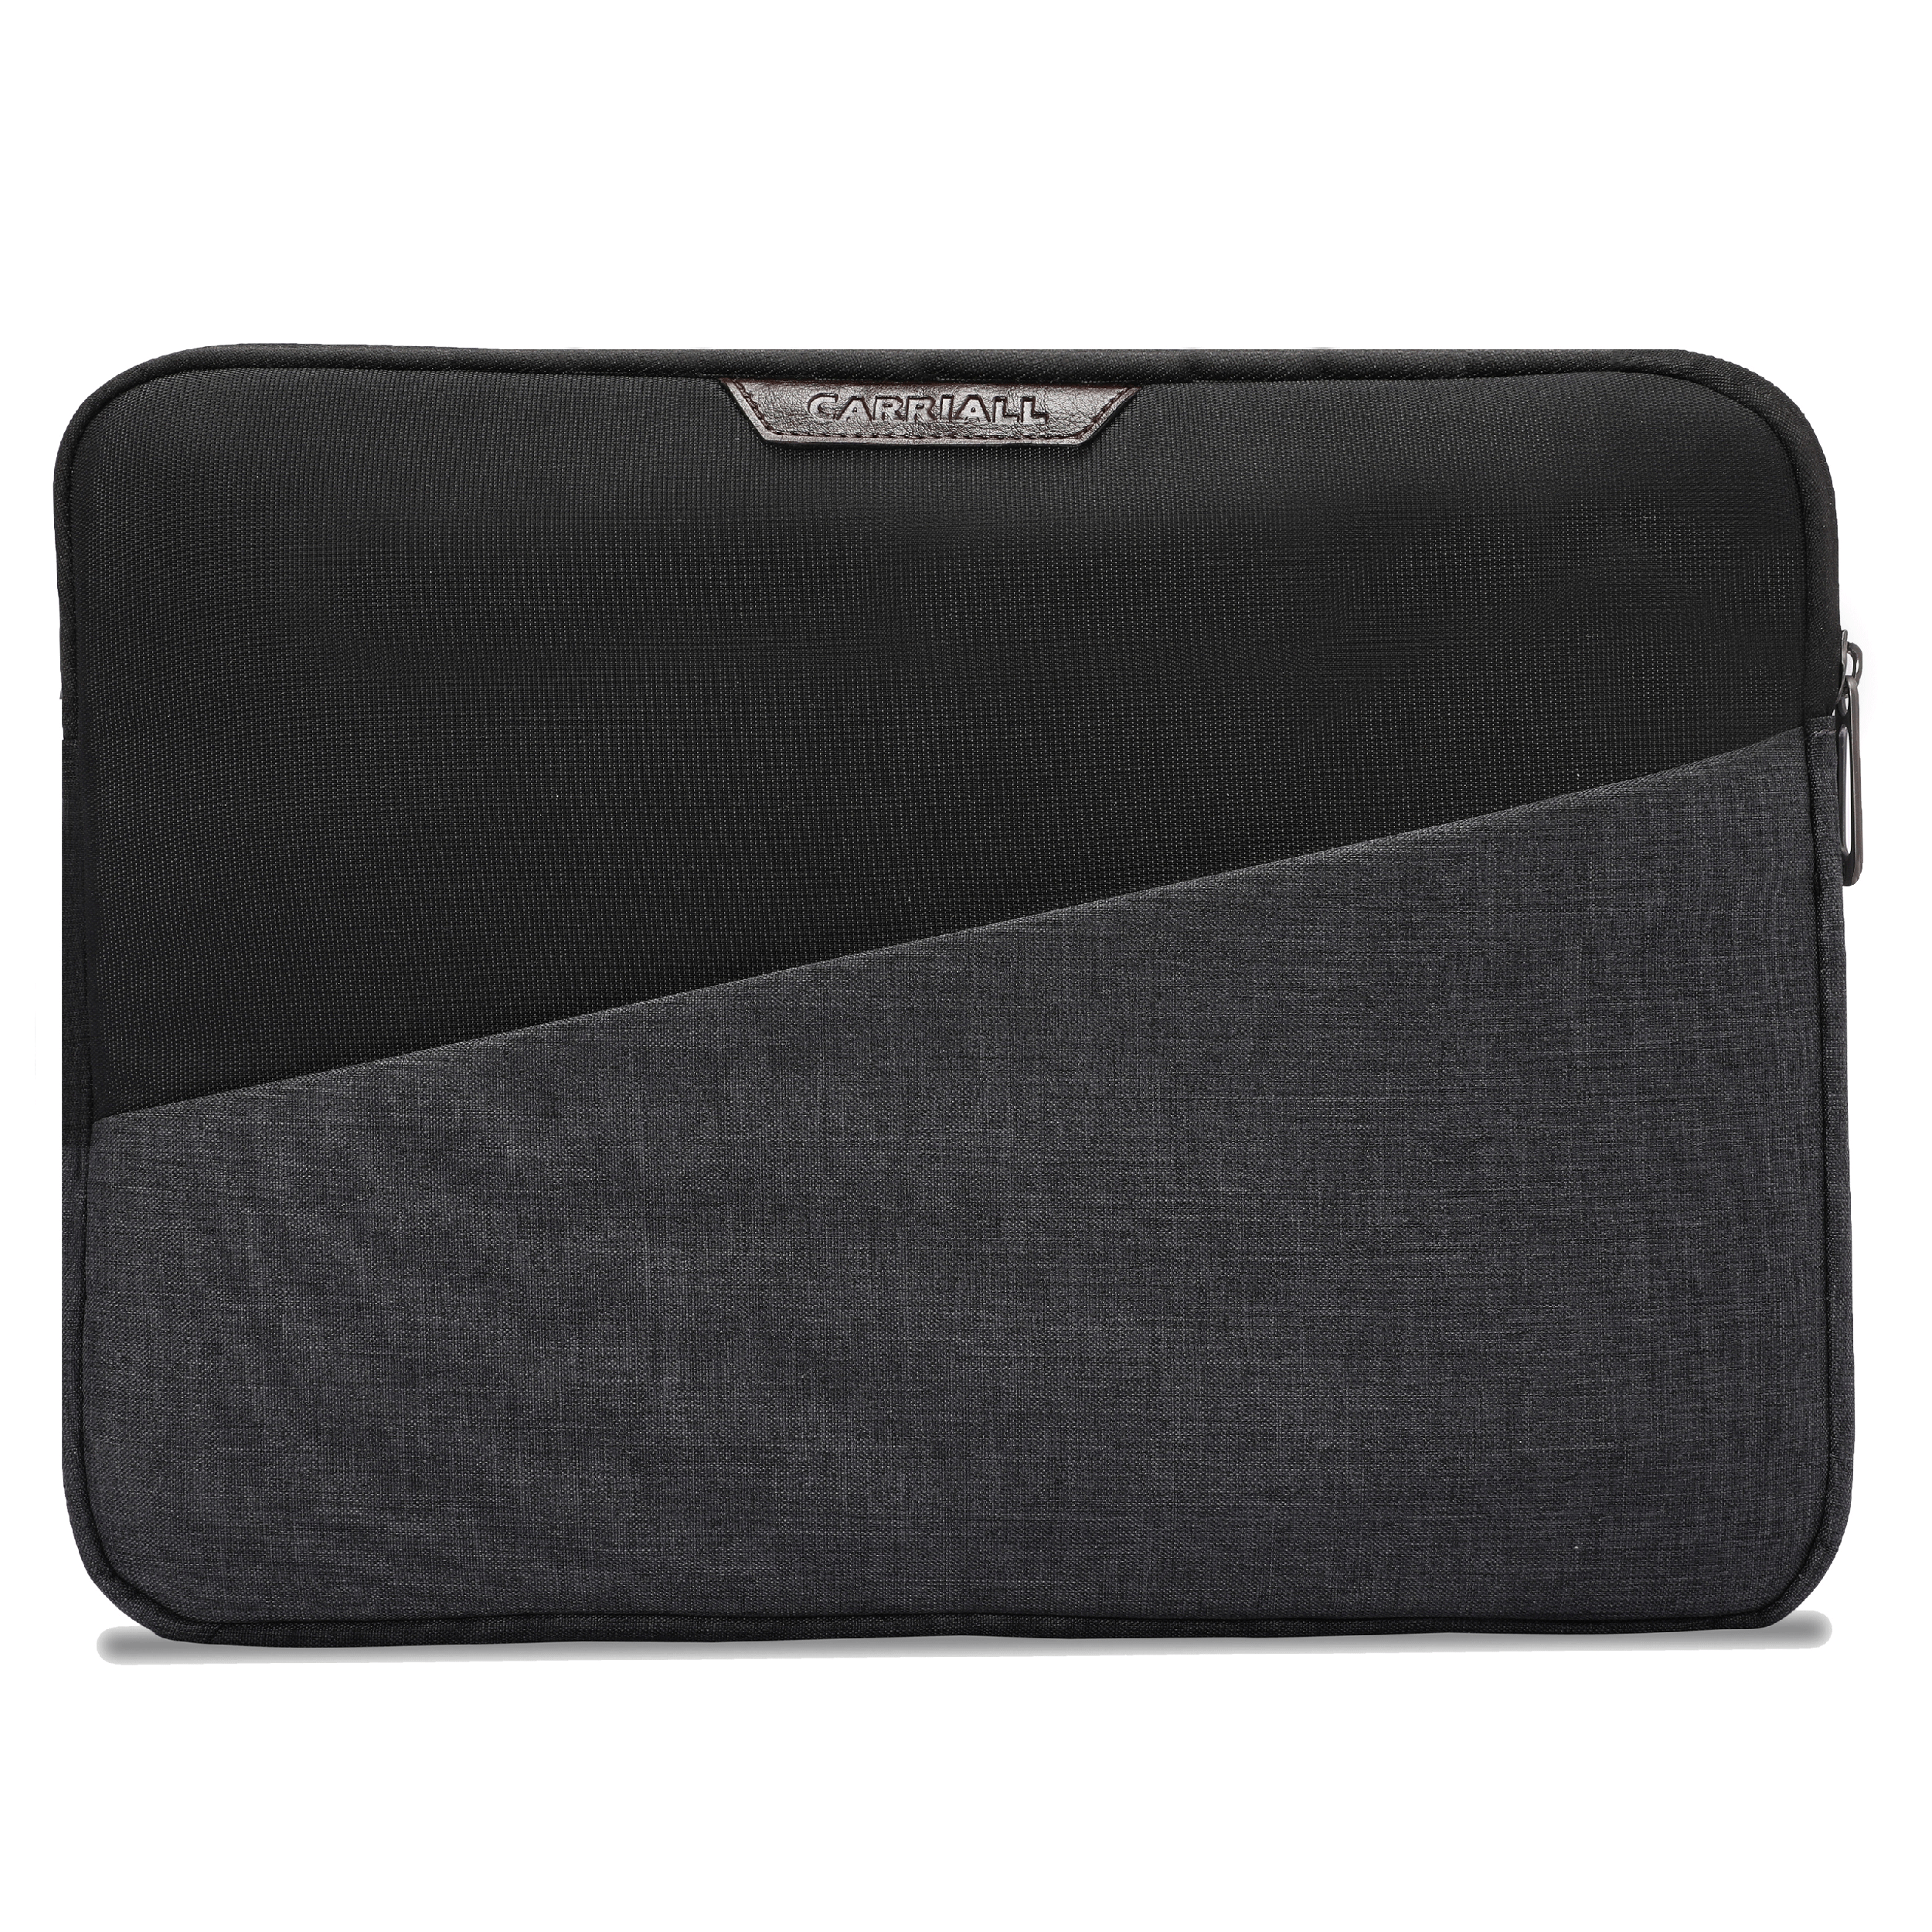 Carriall Ascent Durable Fabric Sleeve for 13 Inch MacBook (Water-Resistant, CALSASCENT4, Black)_1